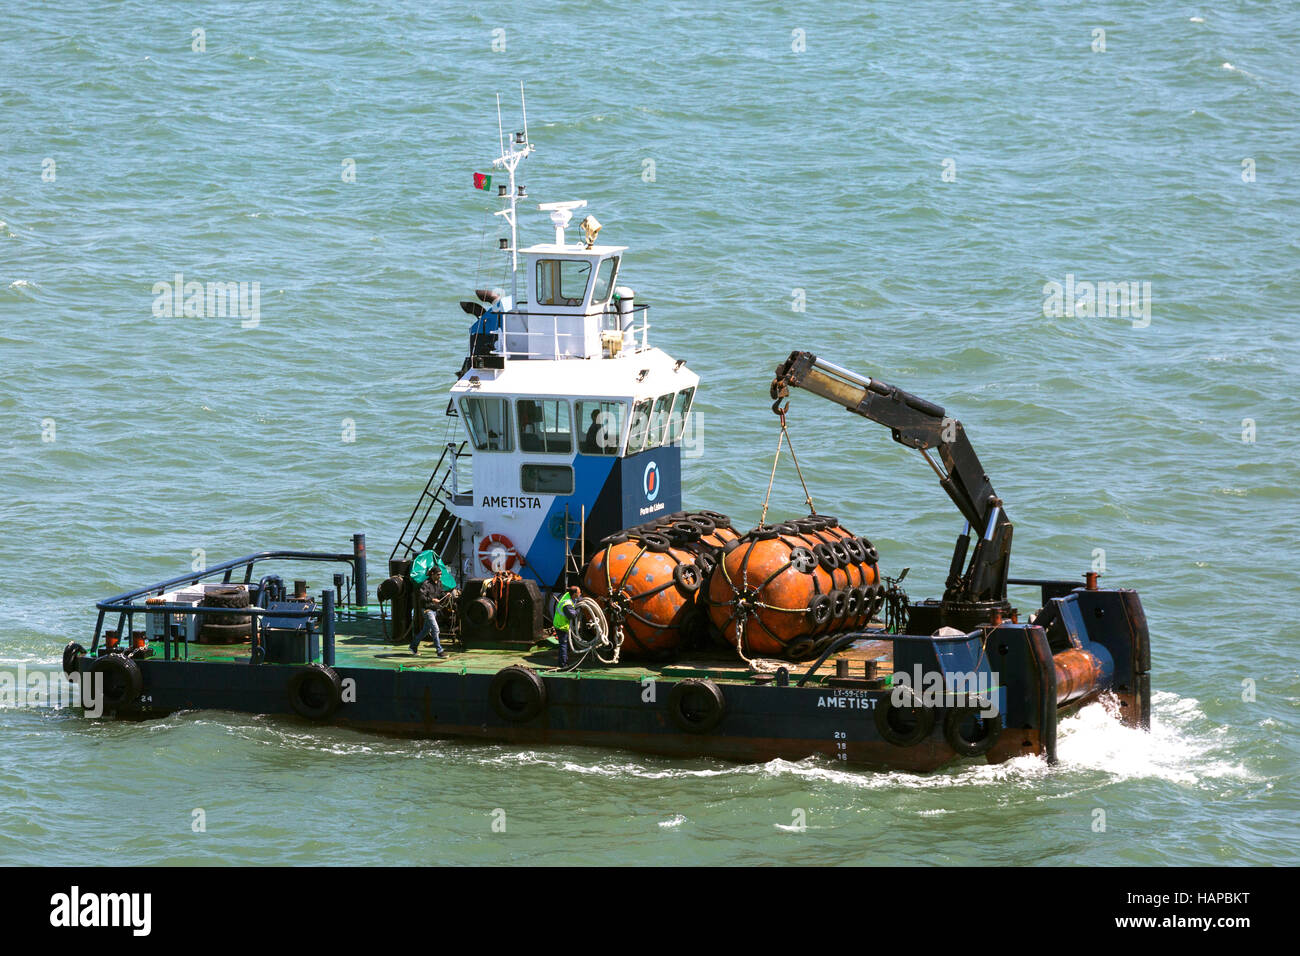 yokohamas being transported by utility vessel in Lisbon Harbour Portugal Stock Photo